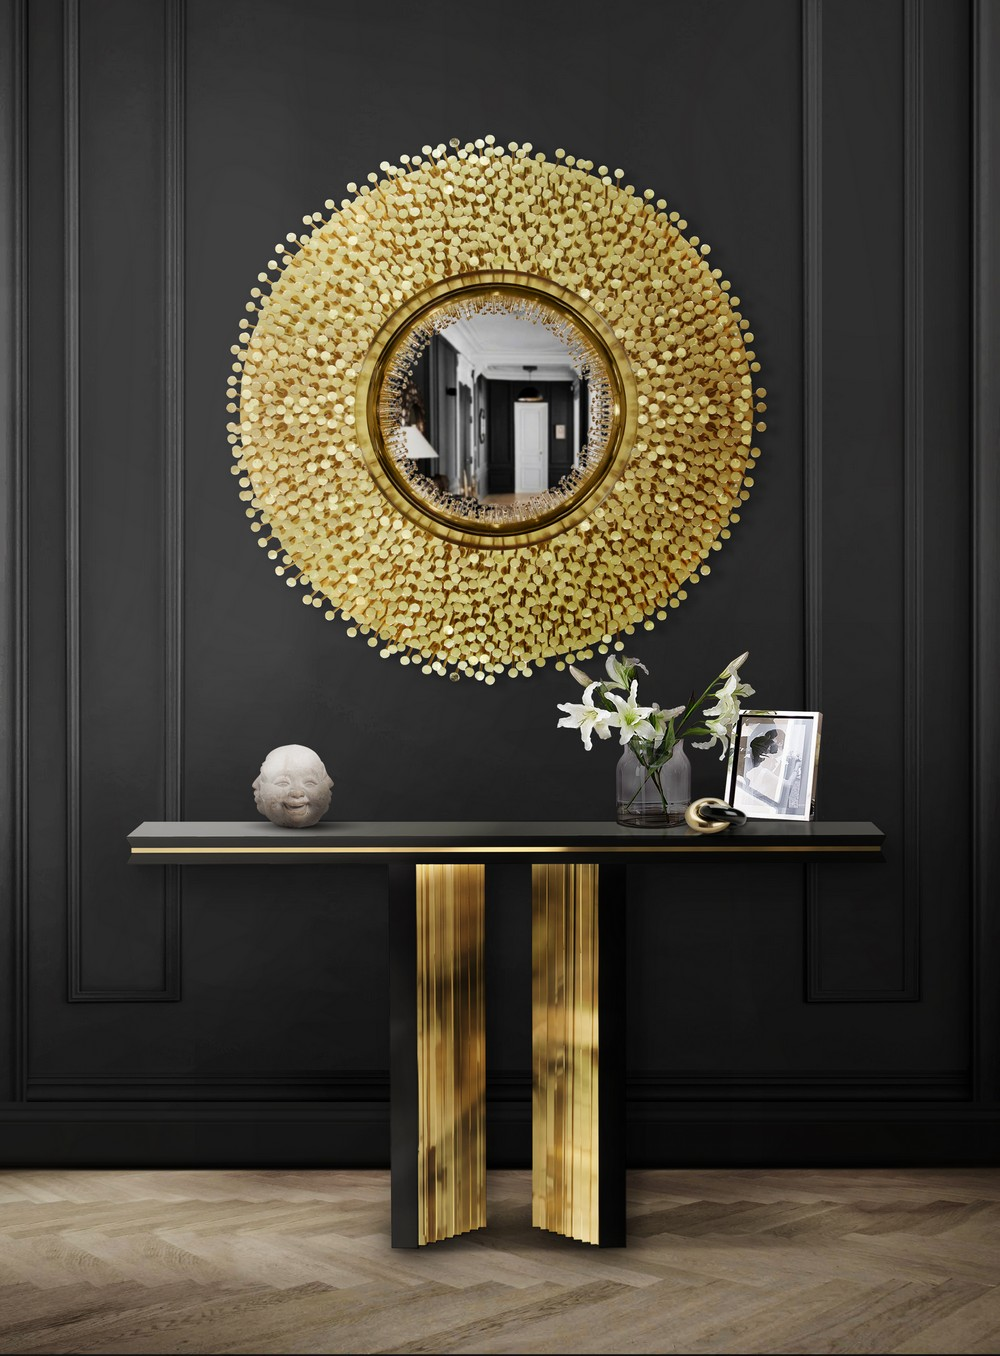 25 Luxury Sideboards Consoles to Consider for a Bold Design Concept 8 luxury sideboards 25 Luxury Sideboards & Consoles to Consider for a Bold Design Concept 25 Luxury Sideboards Consoles to Consider for a Bold Design Concept 8